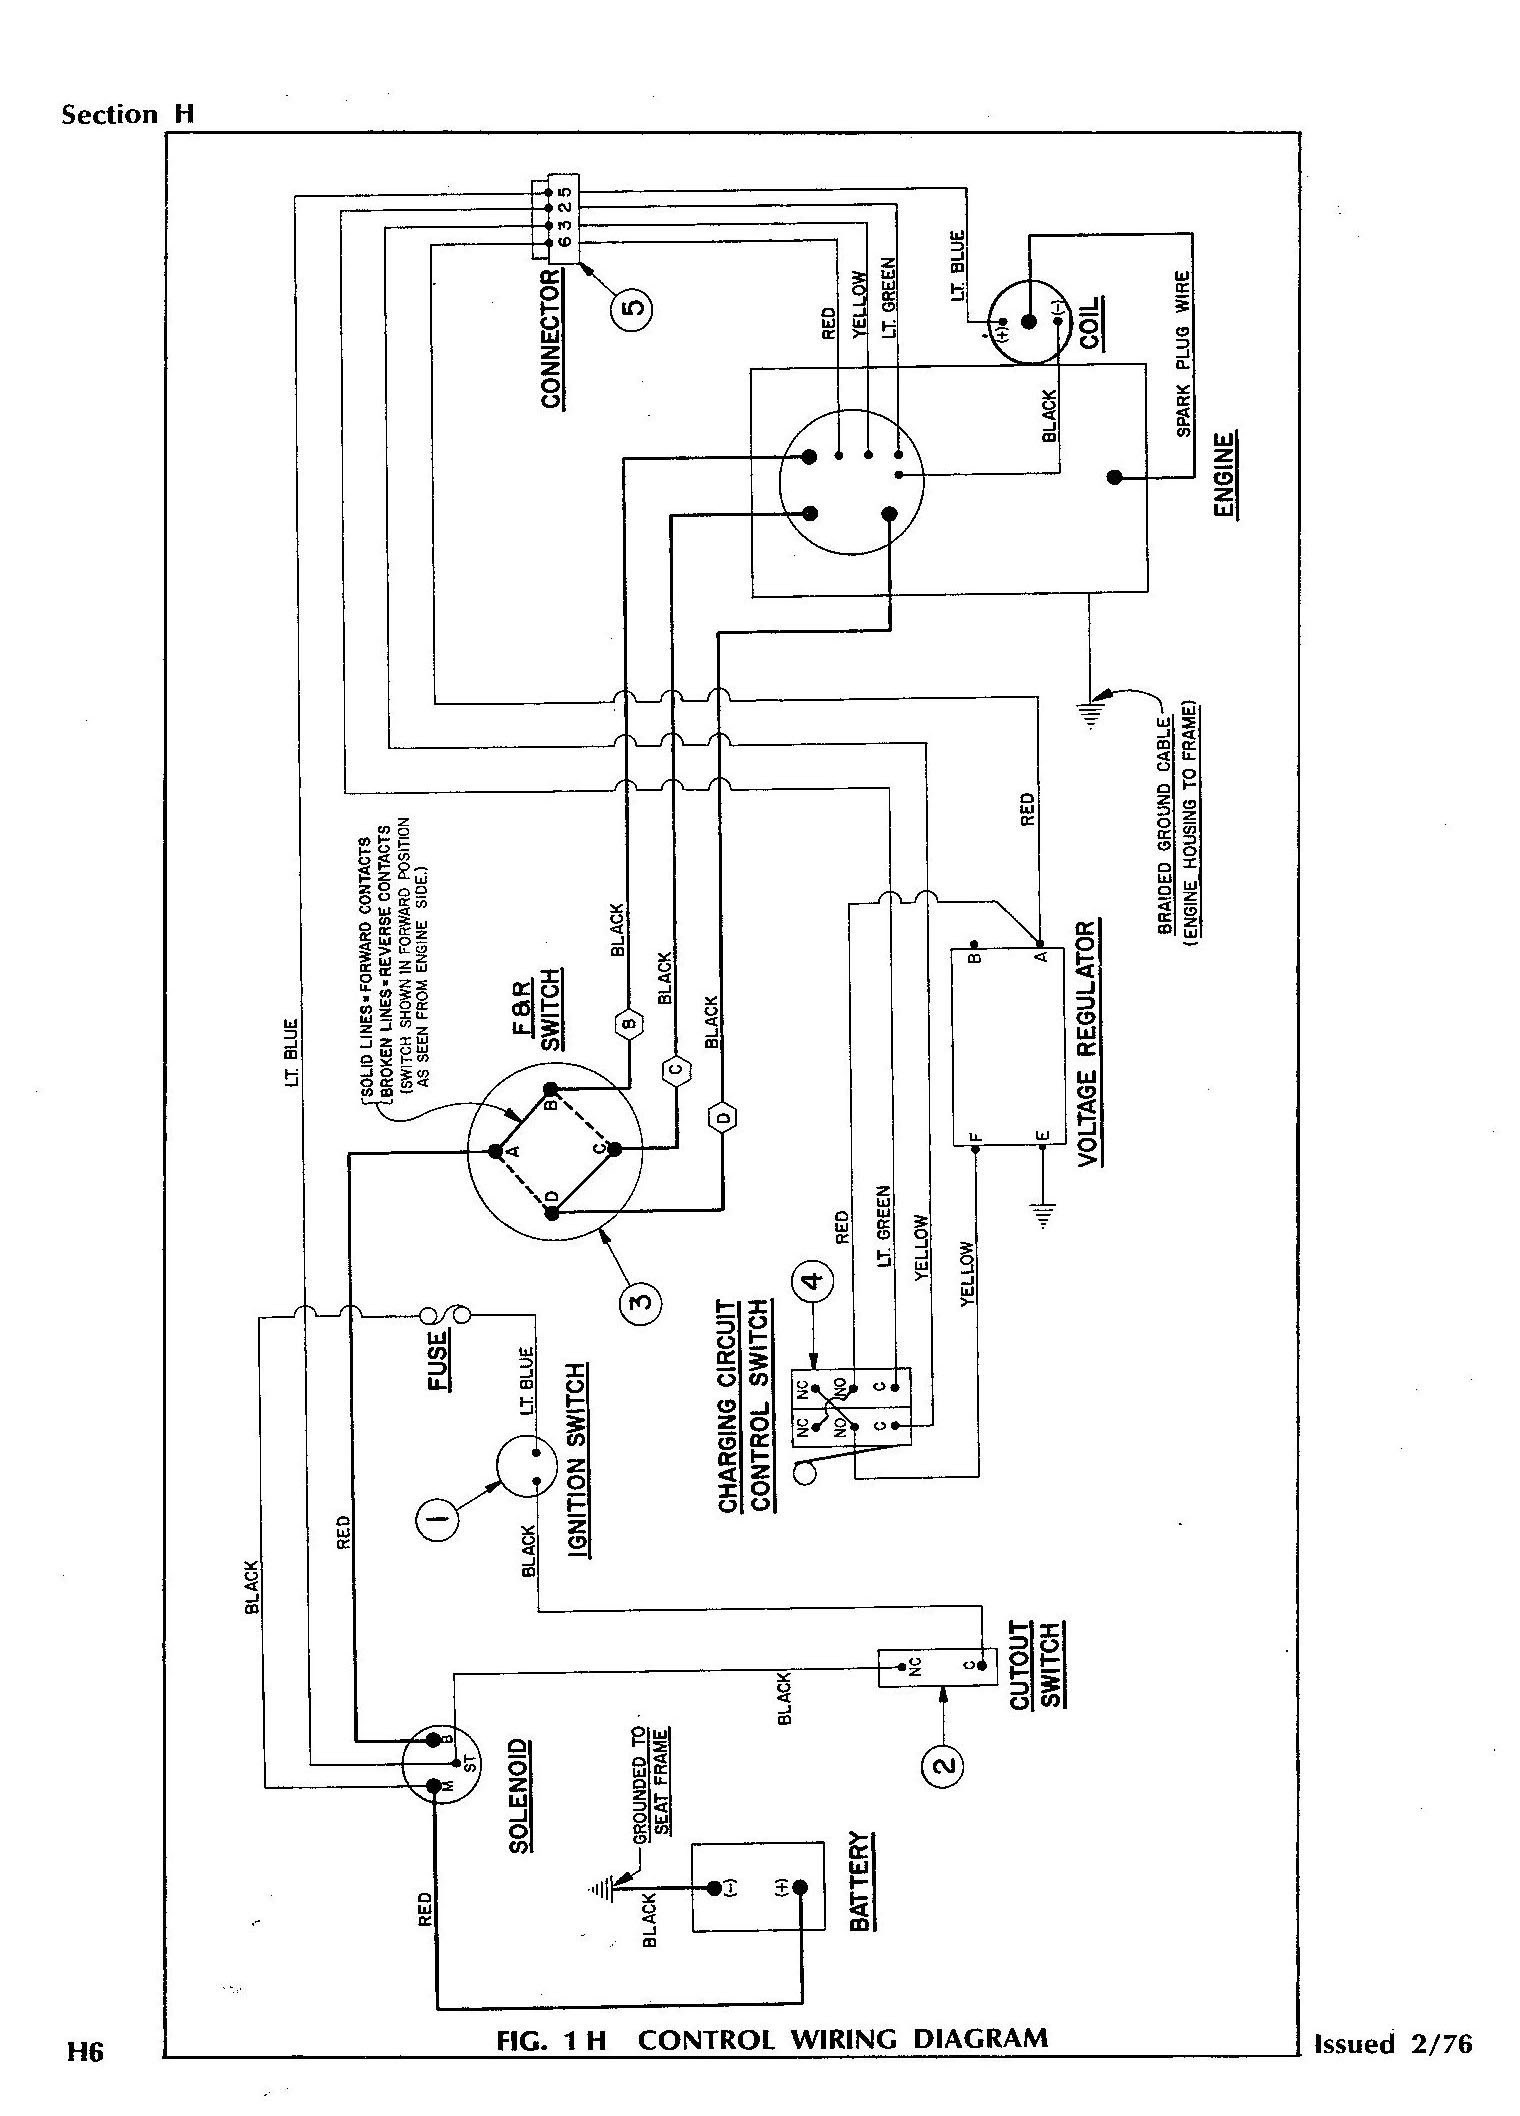 on westinghouse 436 golf cart wiring diagram